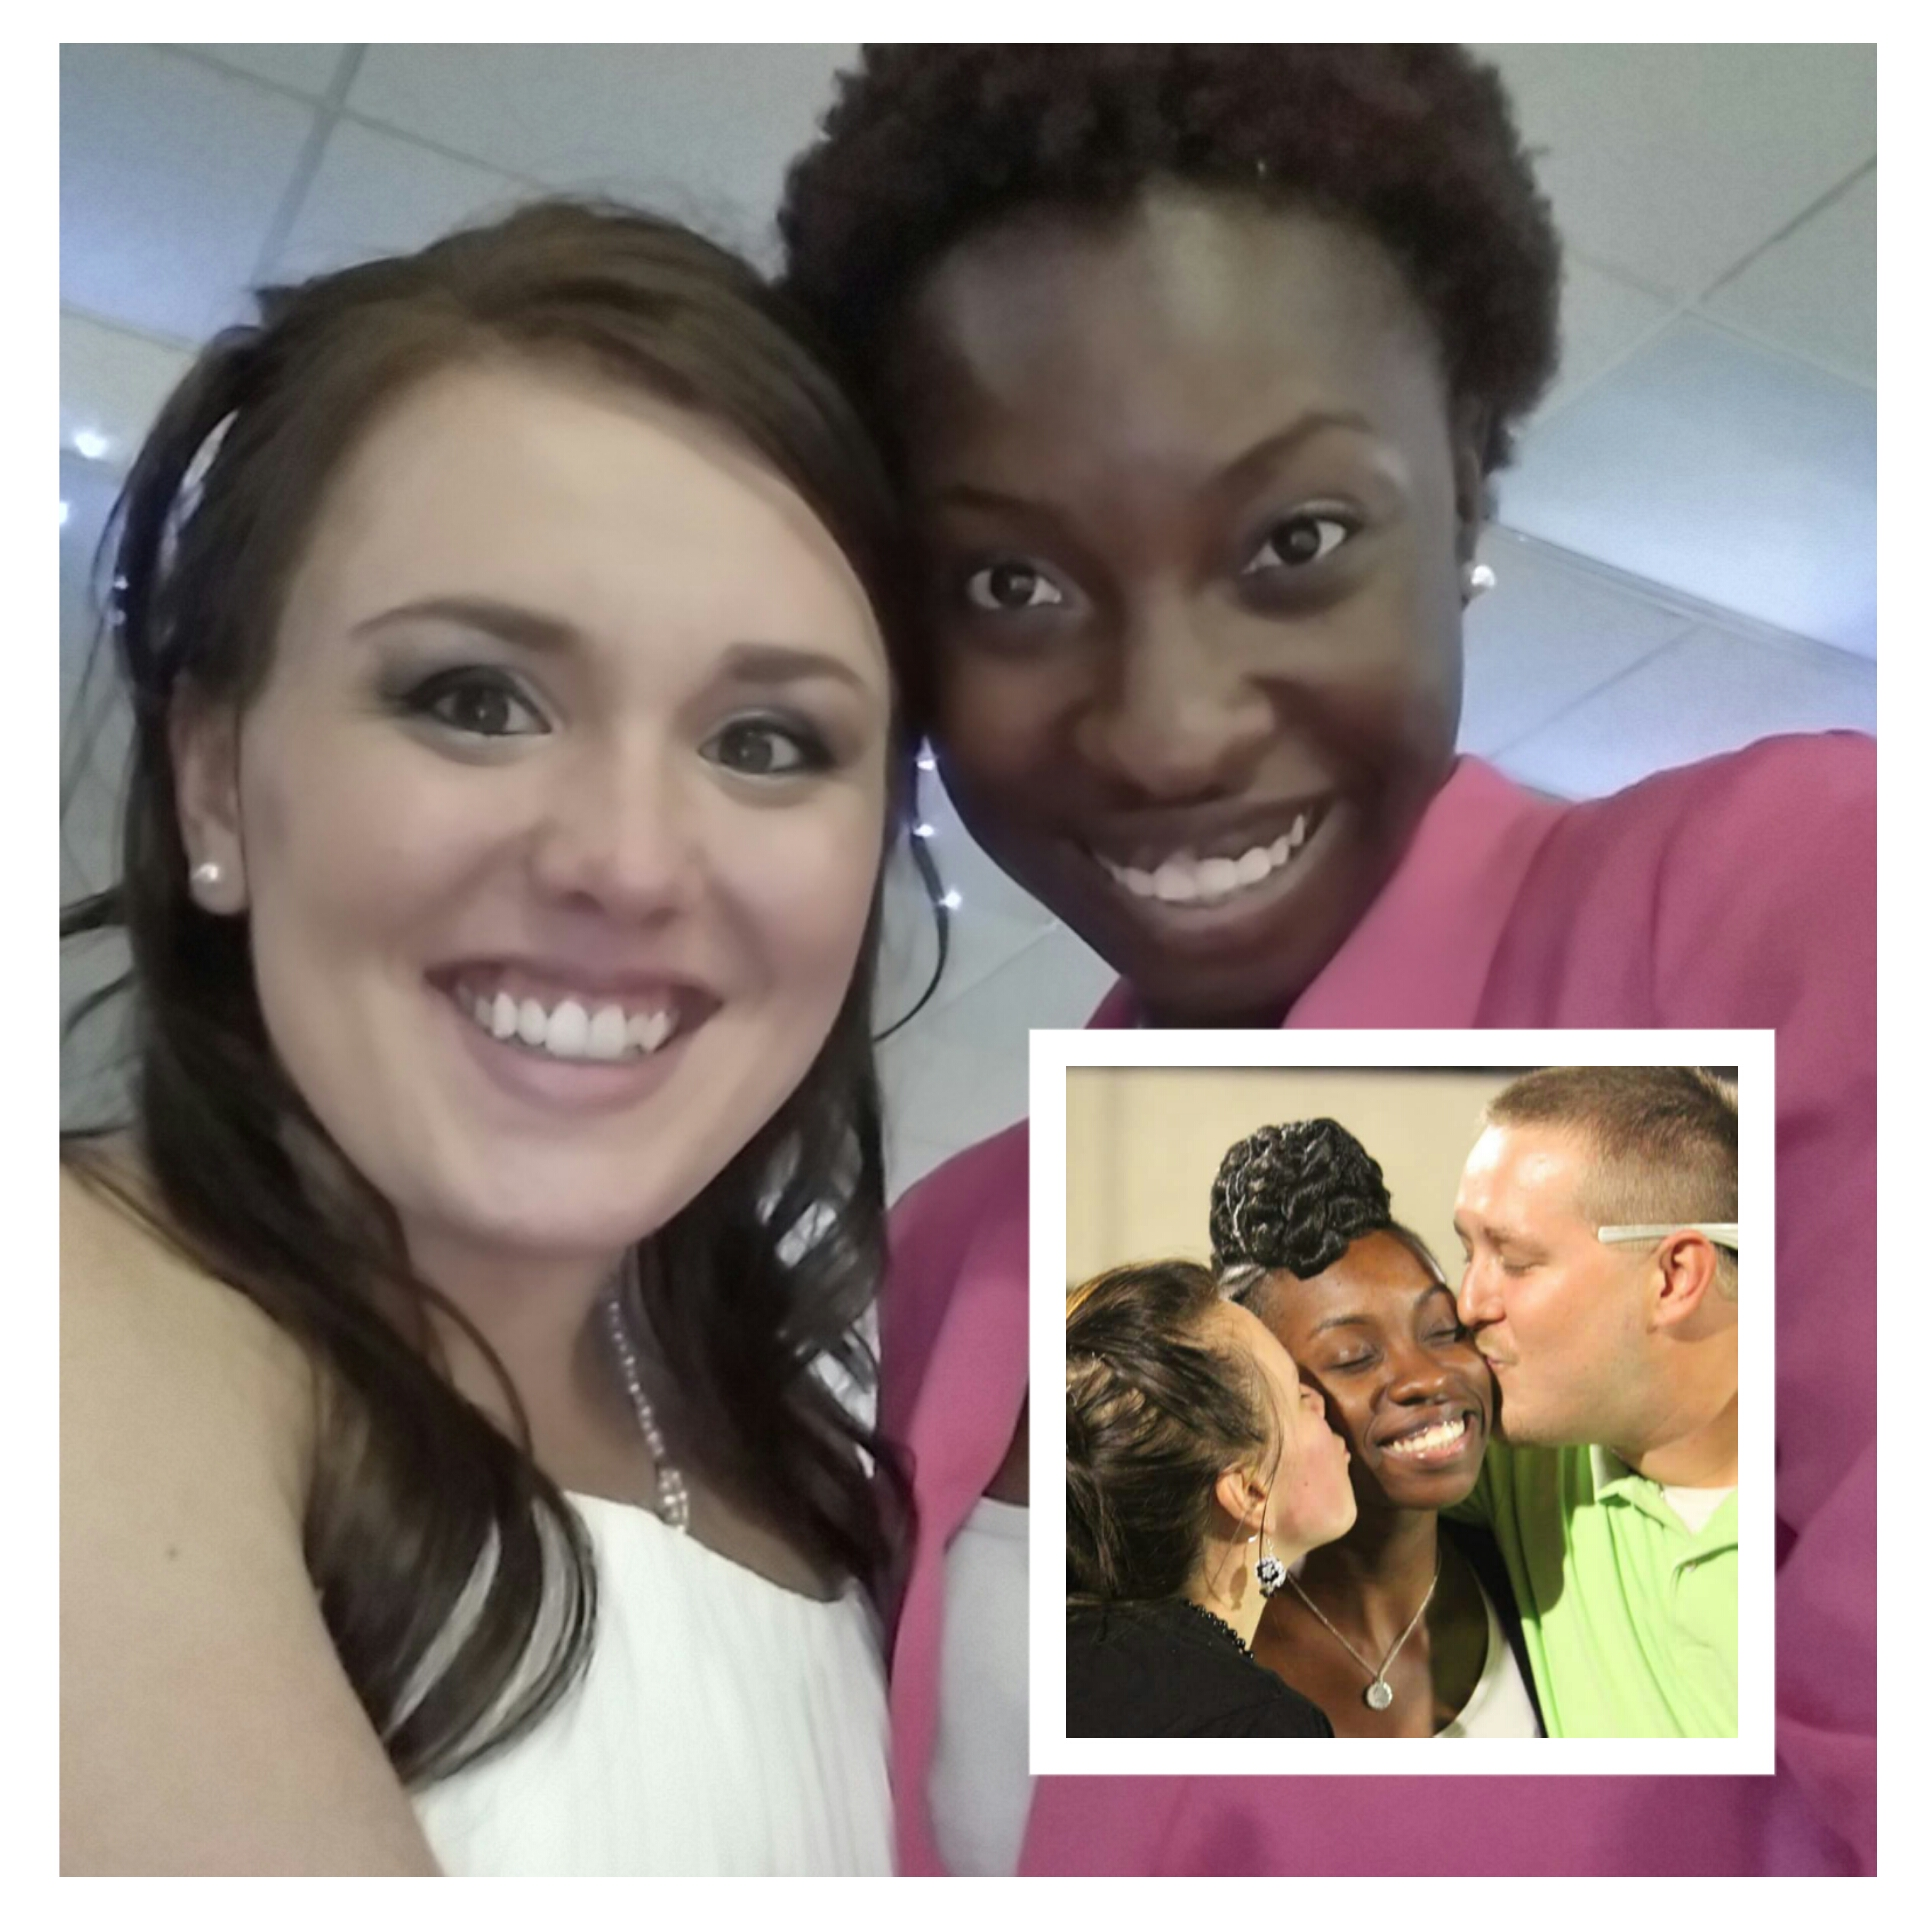 Me at my friend's wedding and at the proposal (2013, they love me lol)